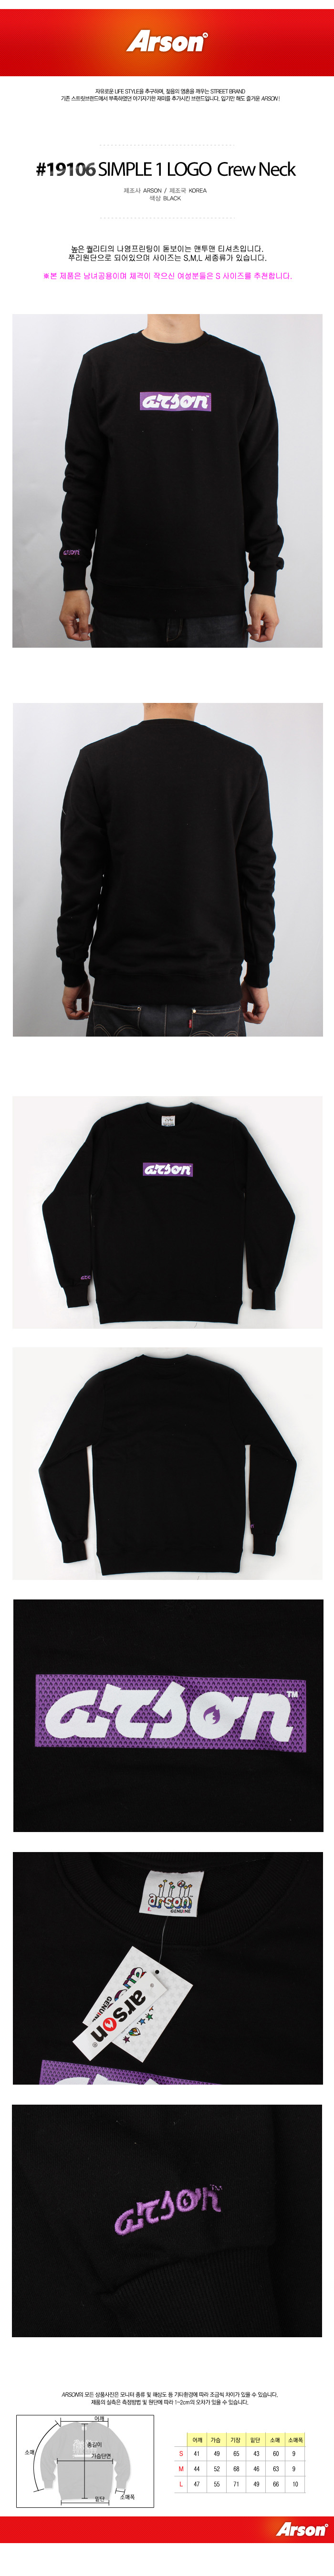 [ ARSON ] [ARSON] 19106 SIMPLE 1 LOGO CREW NECK (Black)